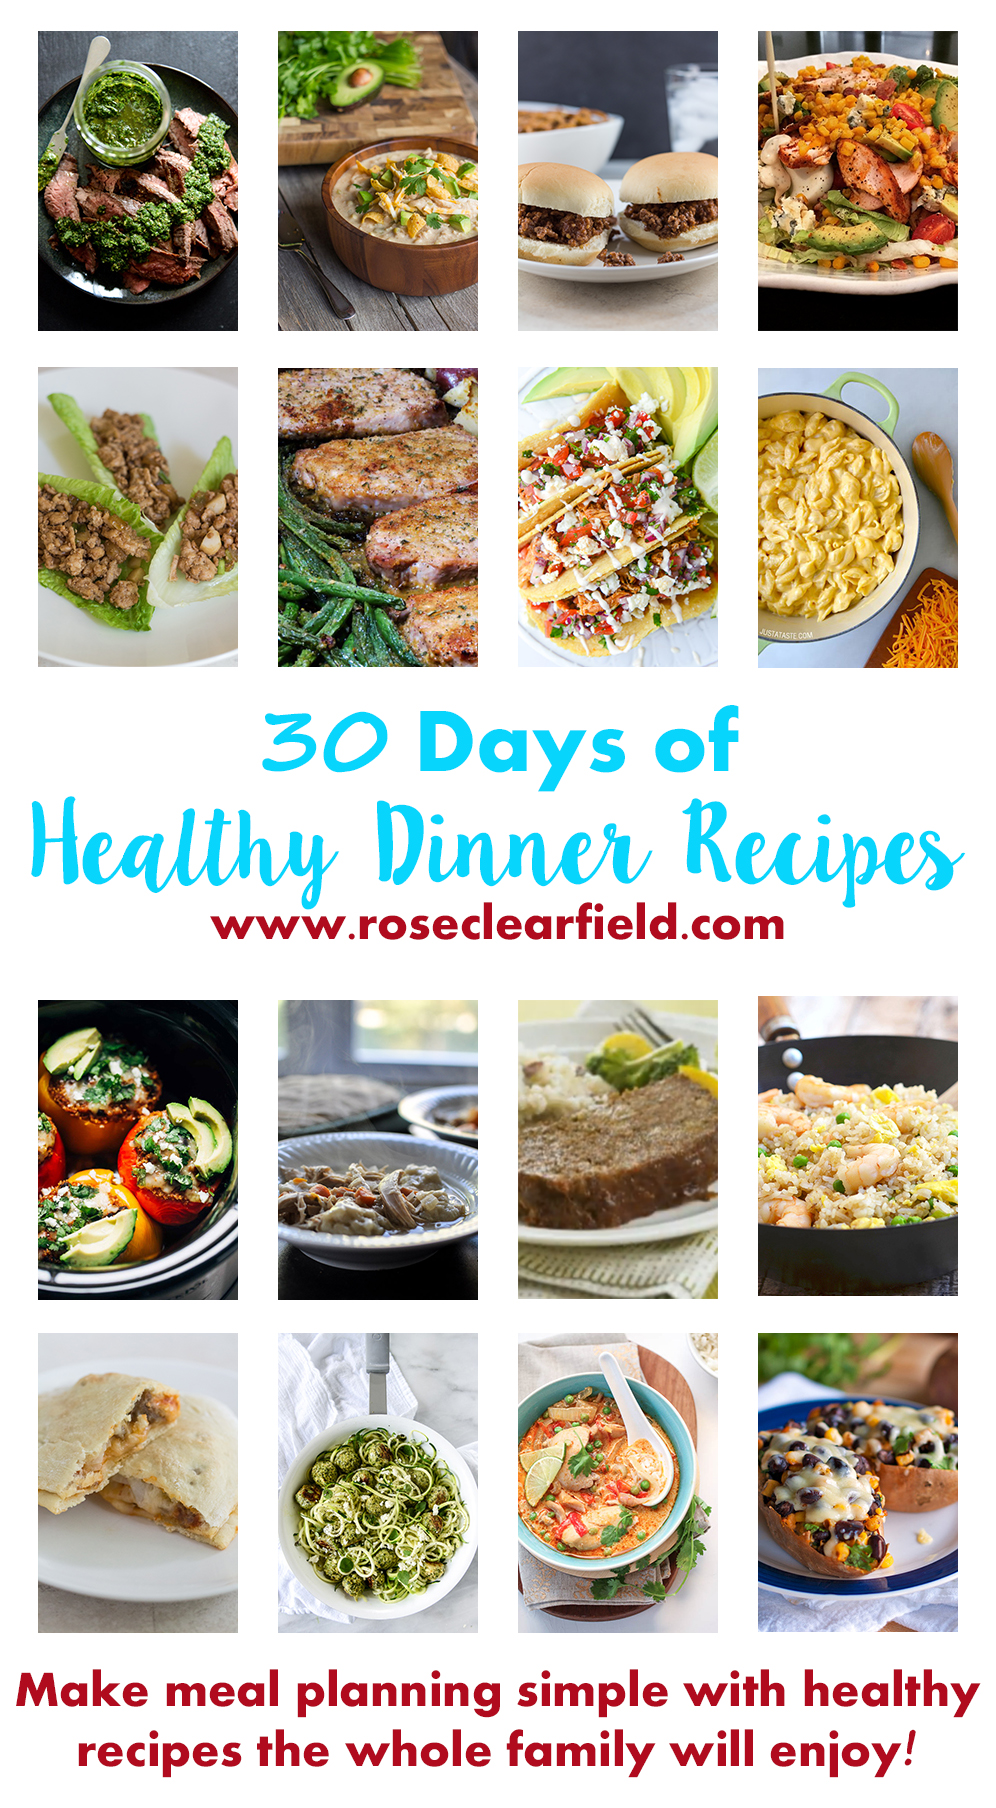 30 Days of Healthy Dinner Recipes. Make meal planning stress-free with simple, healthy recipes the whole family will enjoy! | https://www.roseclearfield.com